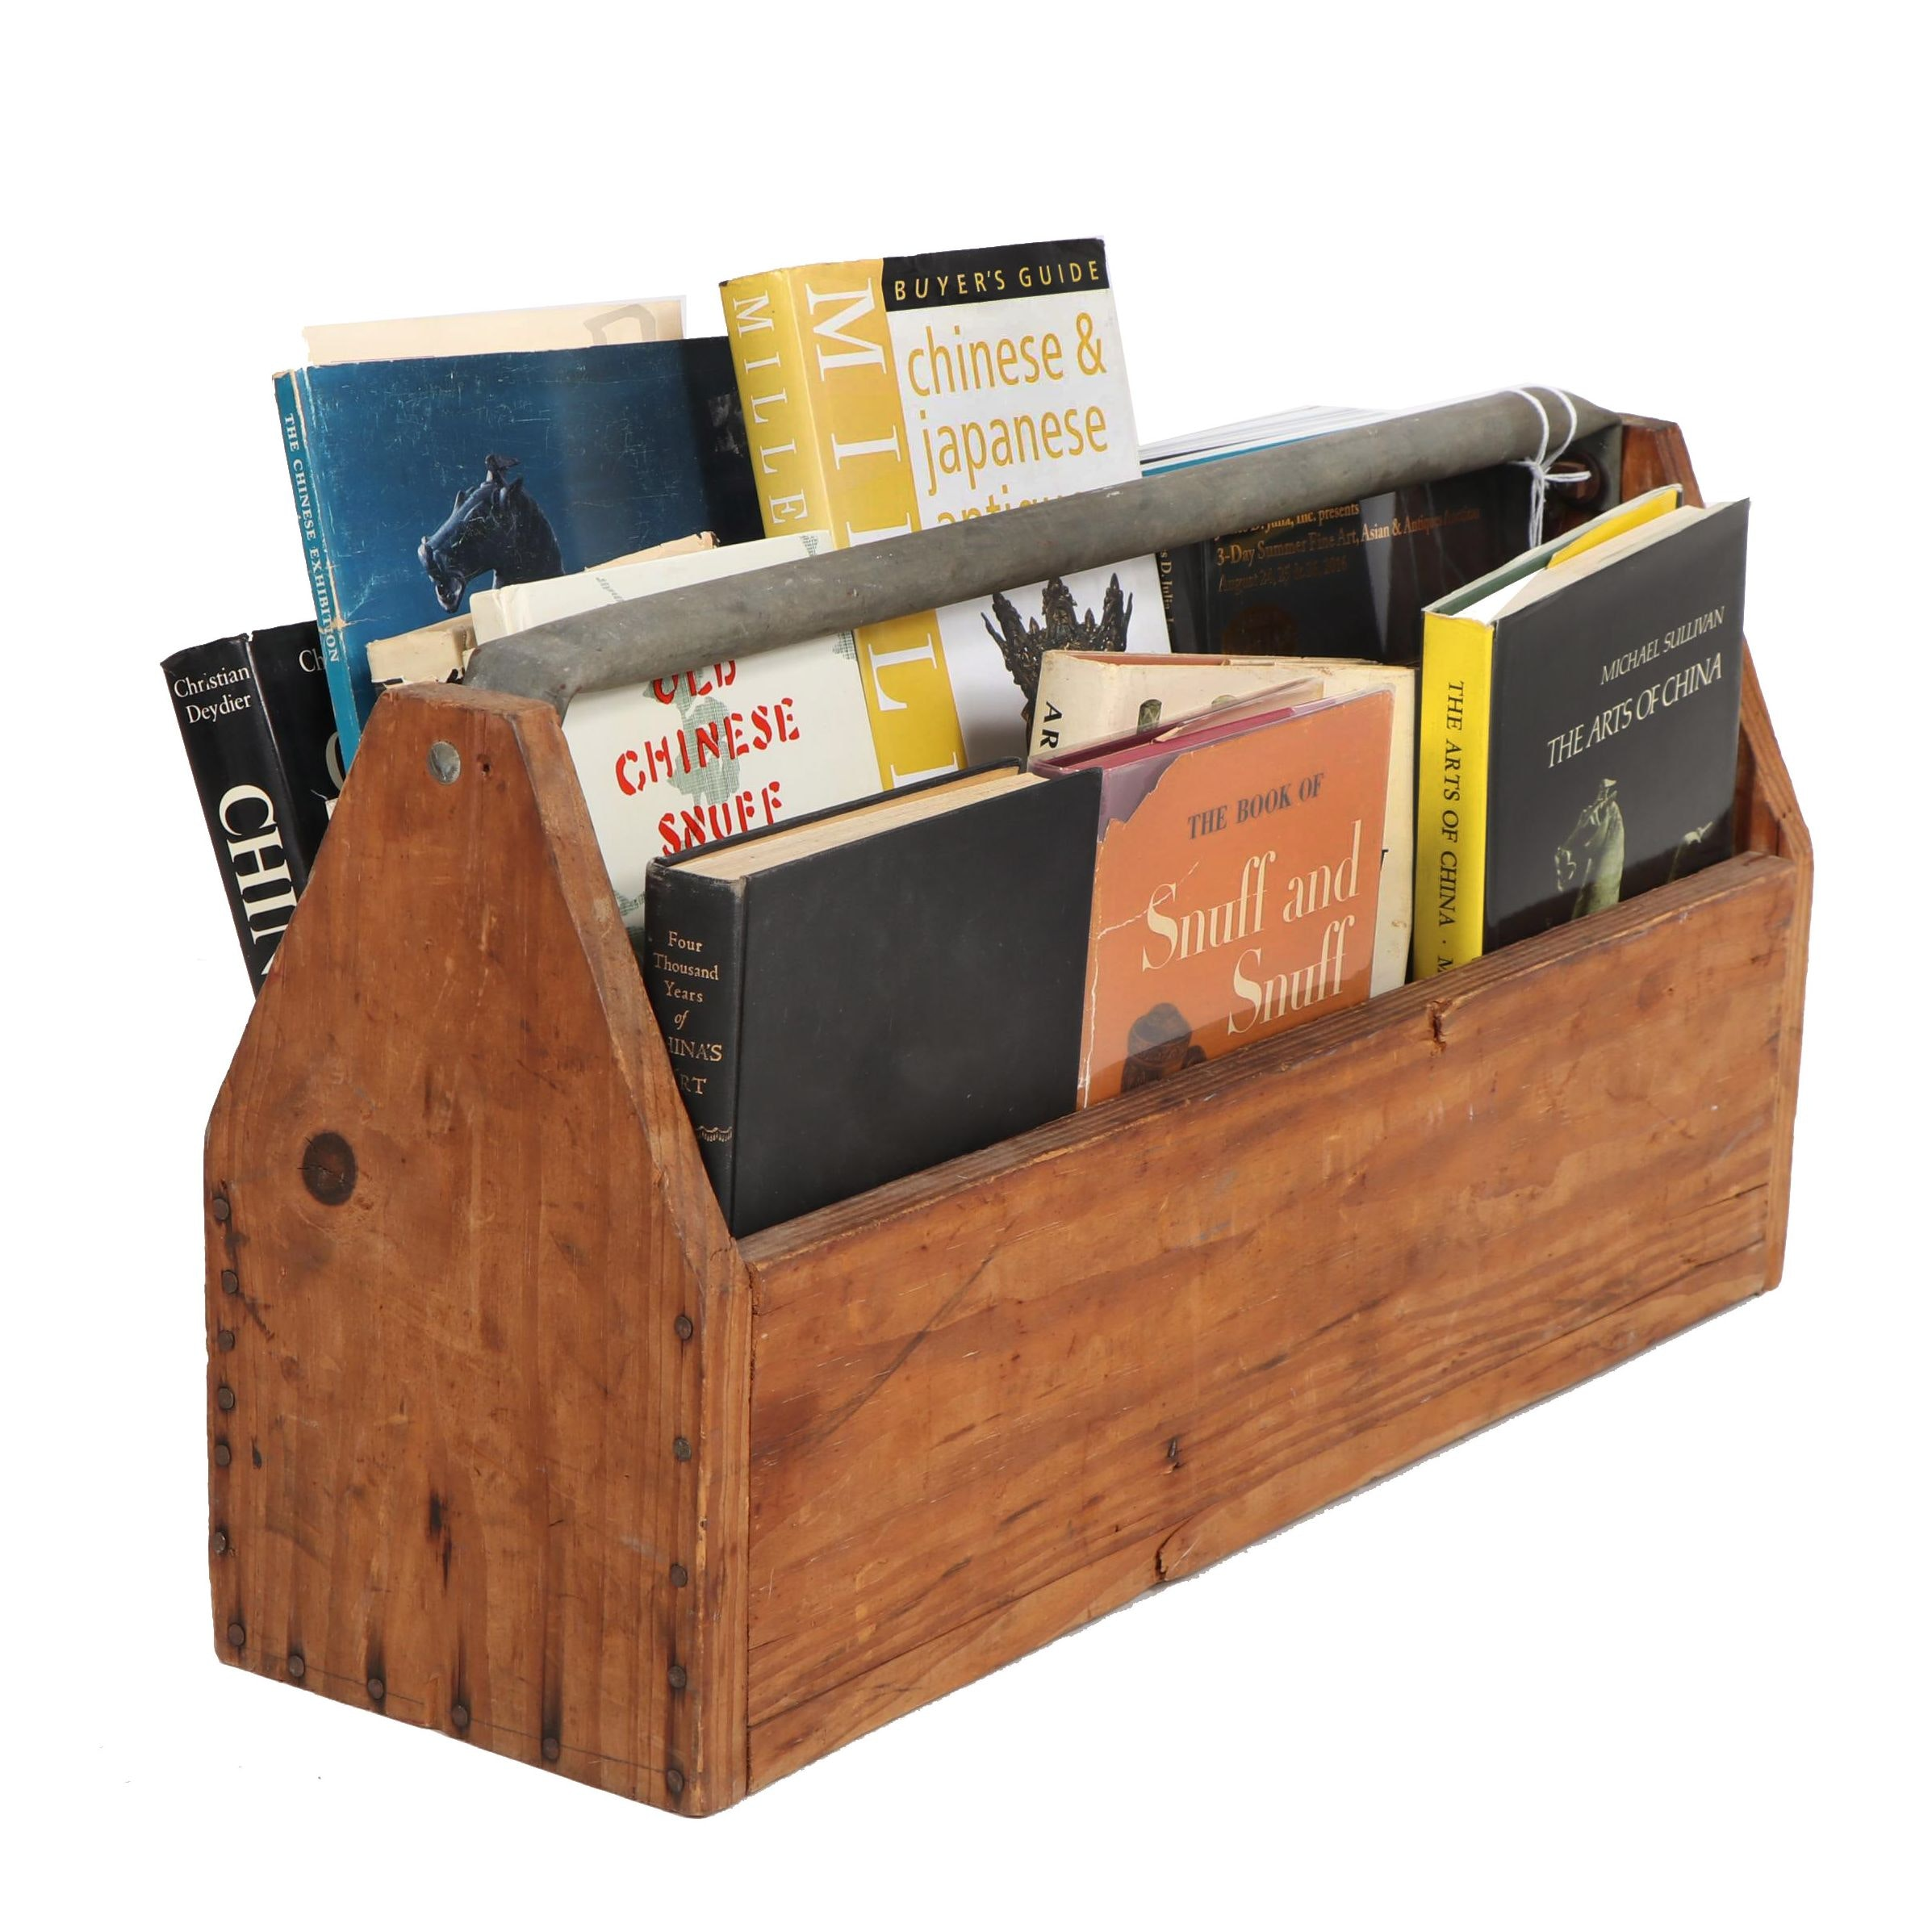 Asian Art and Other Collectors Books with Auction Catalogs in a Wood Caddy